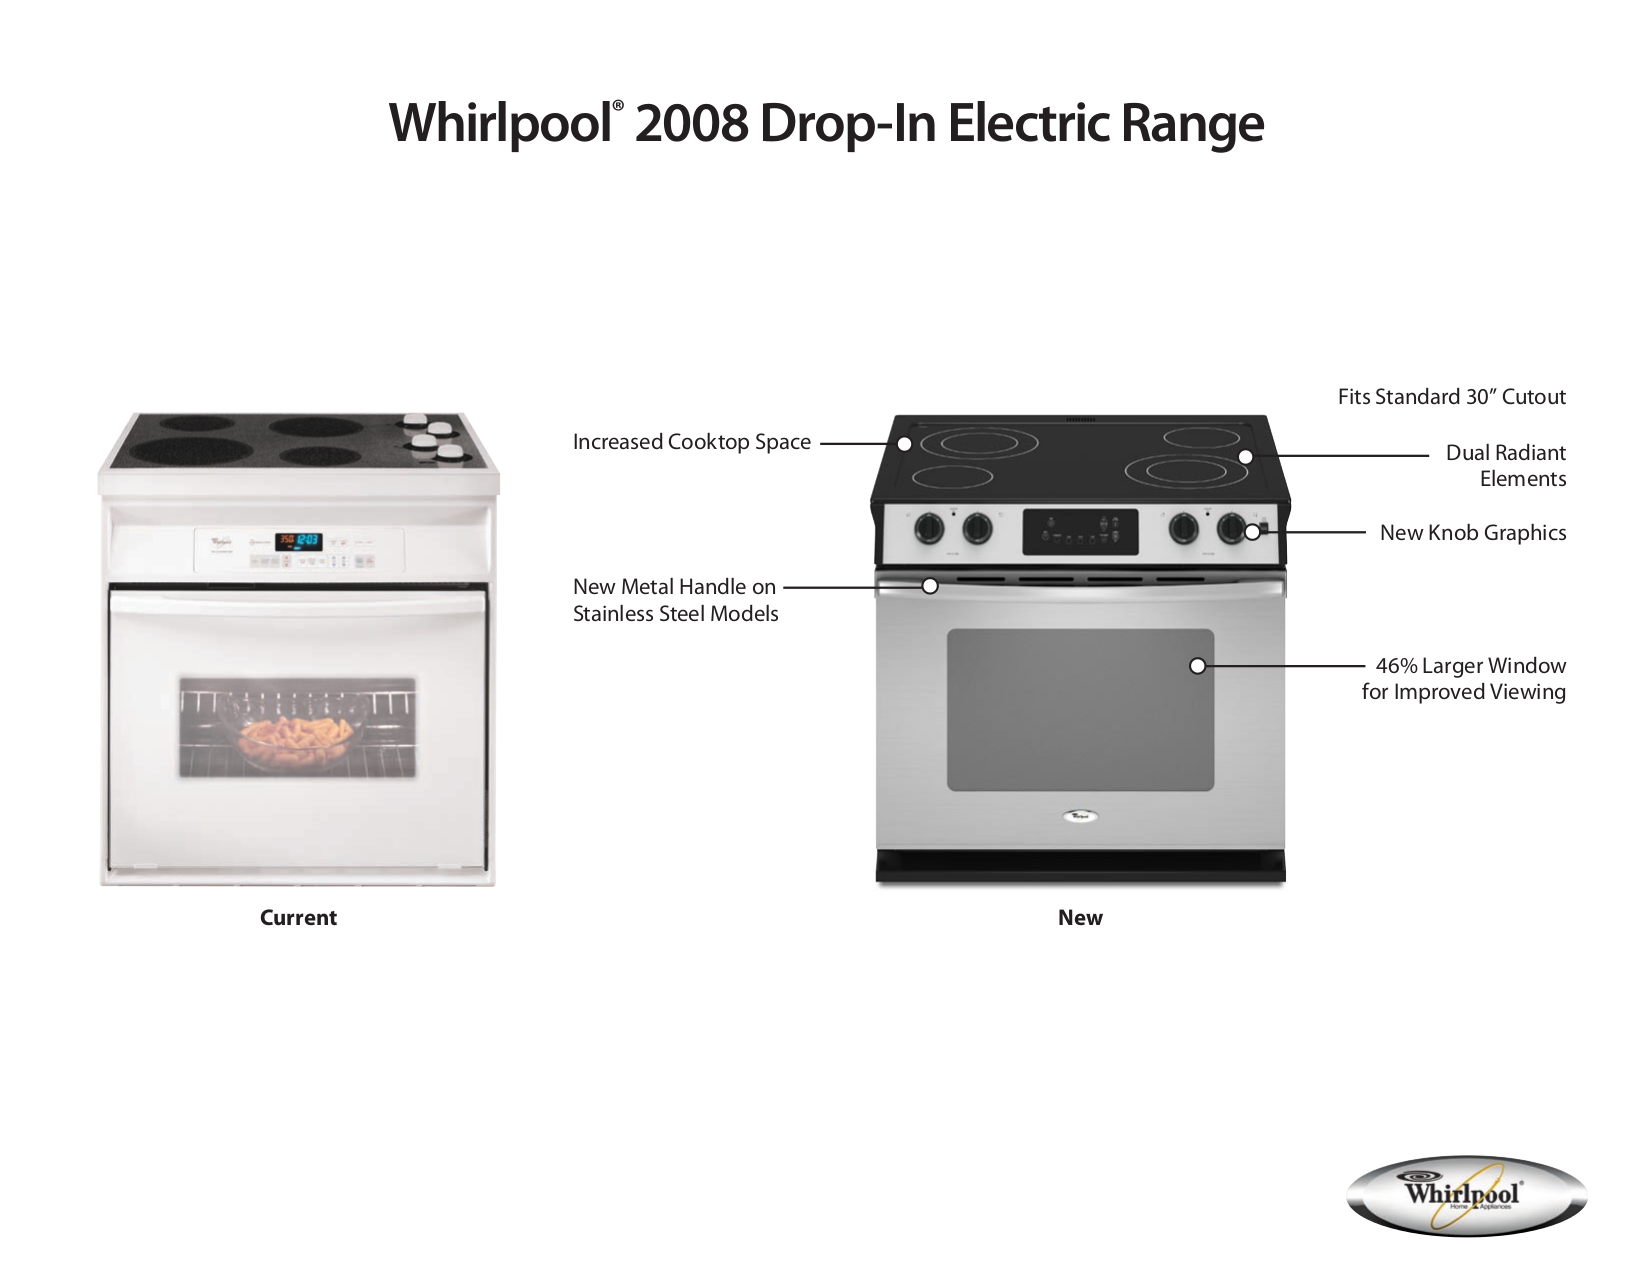 whirlpool stove manual daily instruction manual guides u2022 rh testingwordpress co whirlpool accubake oven user manual whirlpool oven instruction manual